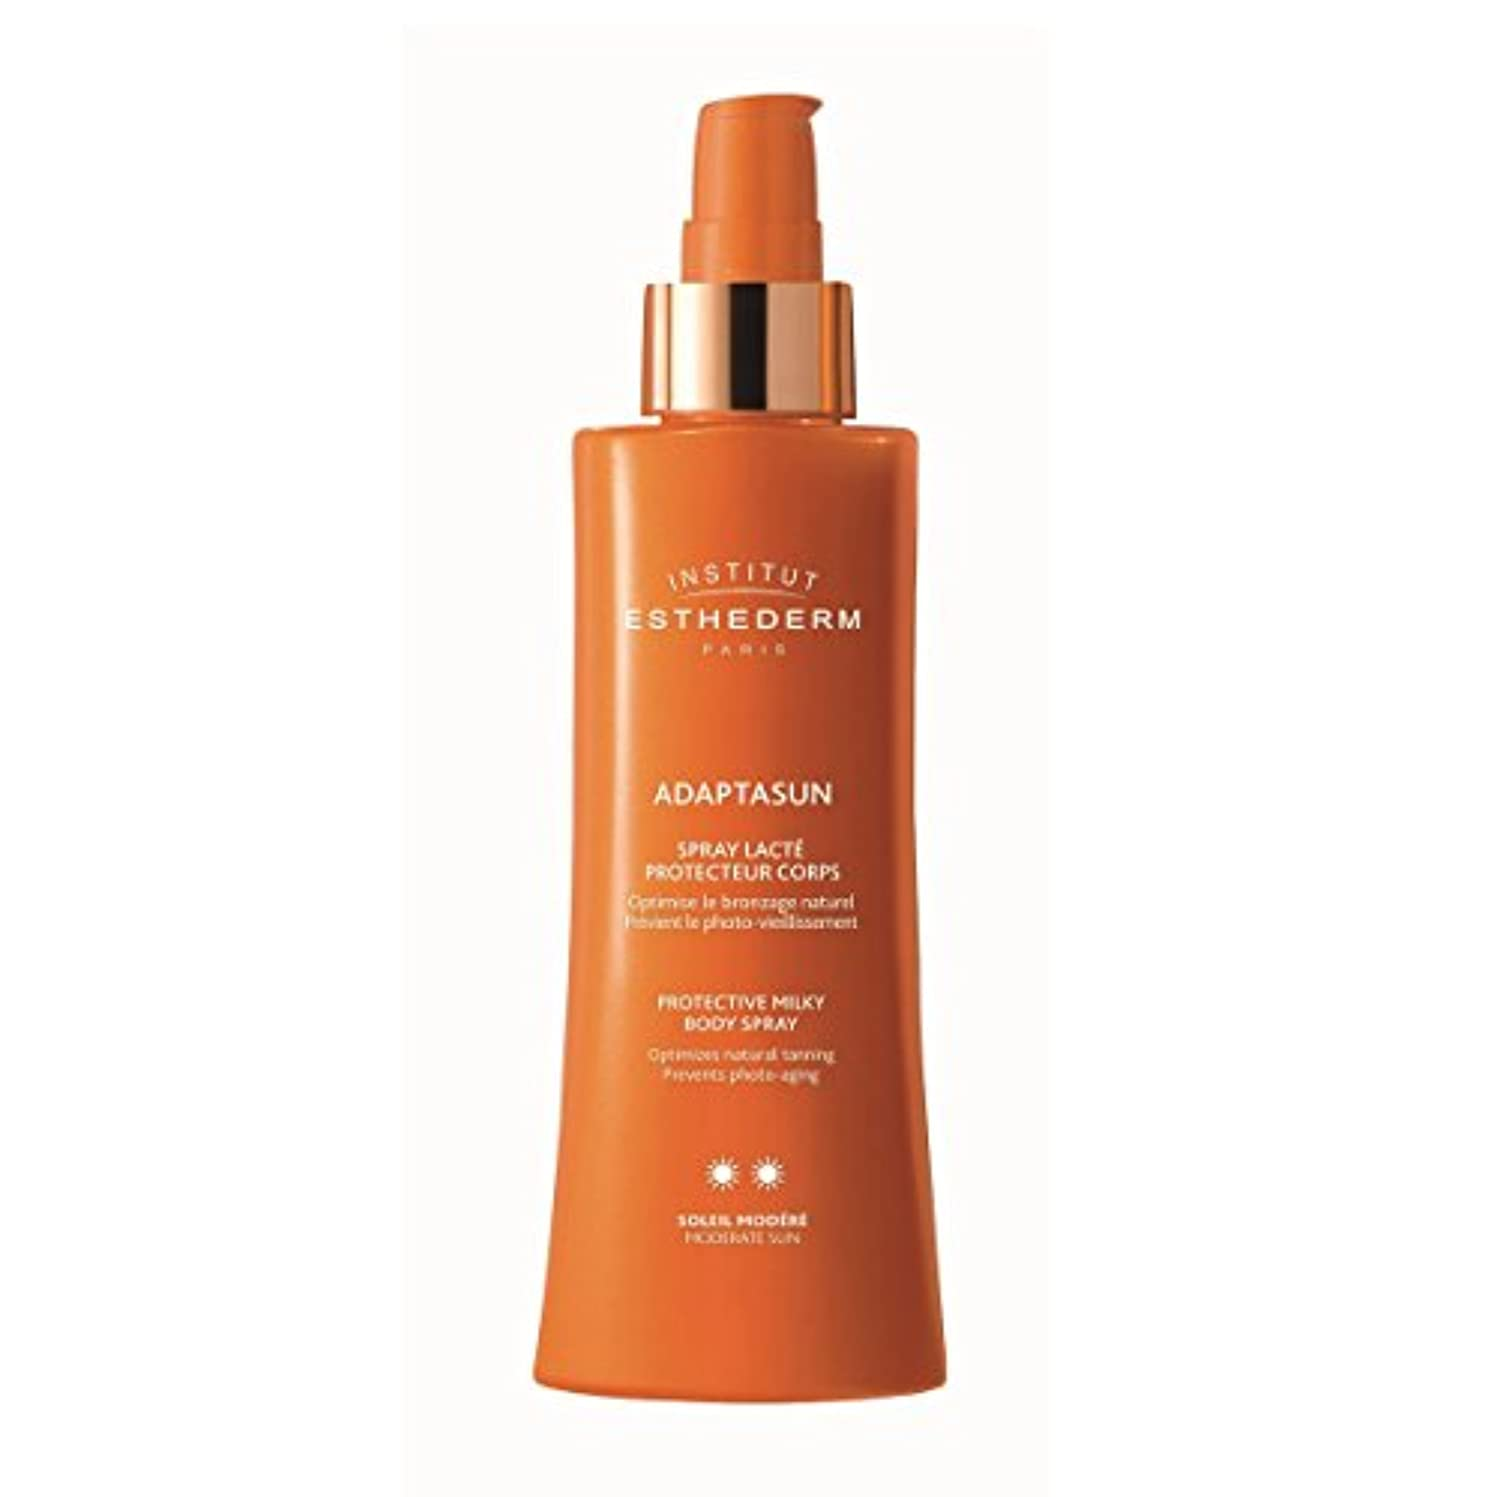 出版から構成するInstitut Esthederm Adaptasun Protective Milky Body Spray Moderate Sun 150ml [並行輸入品]